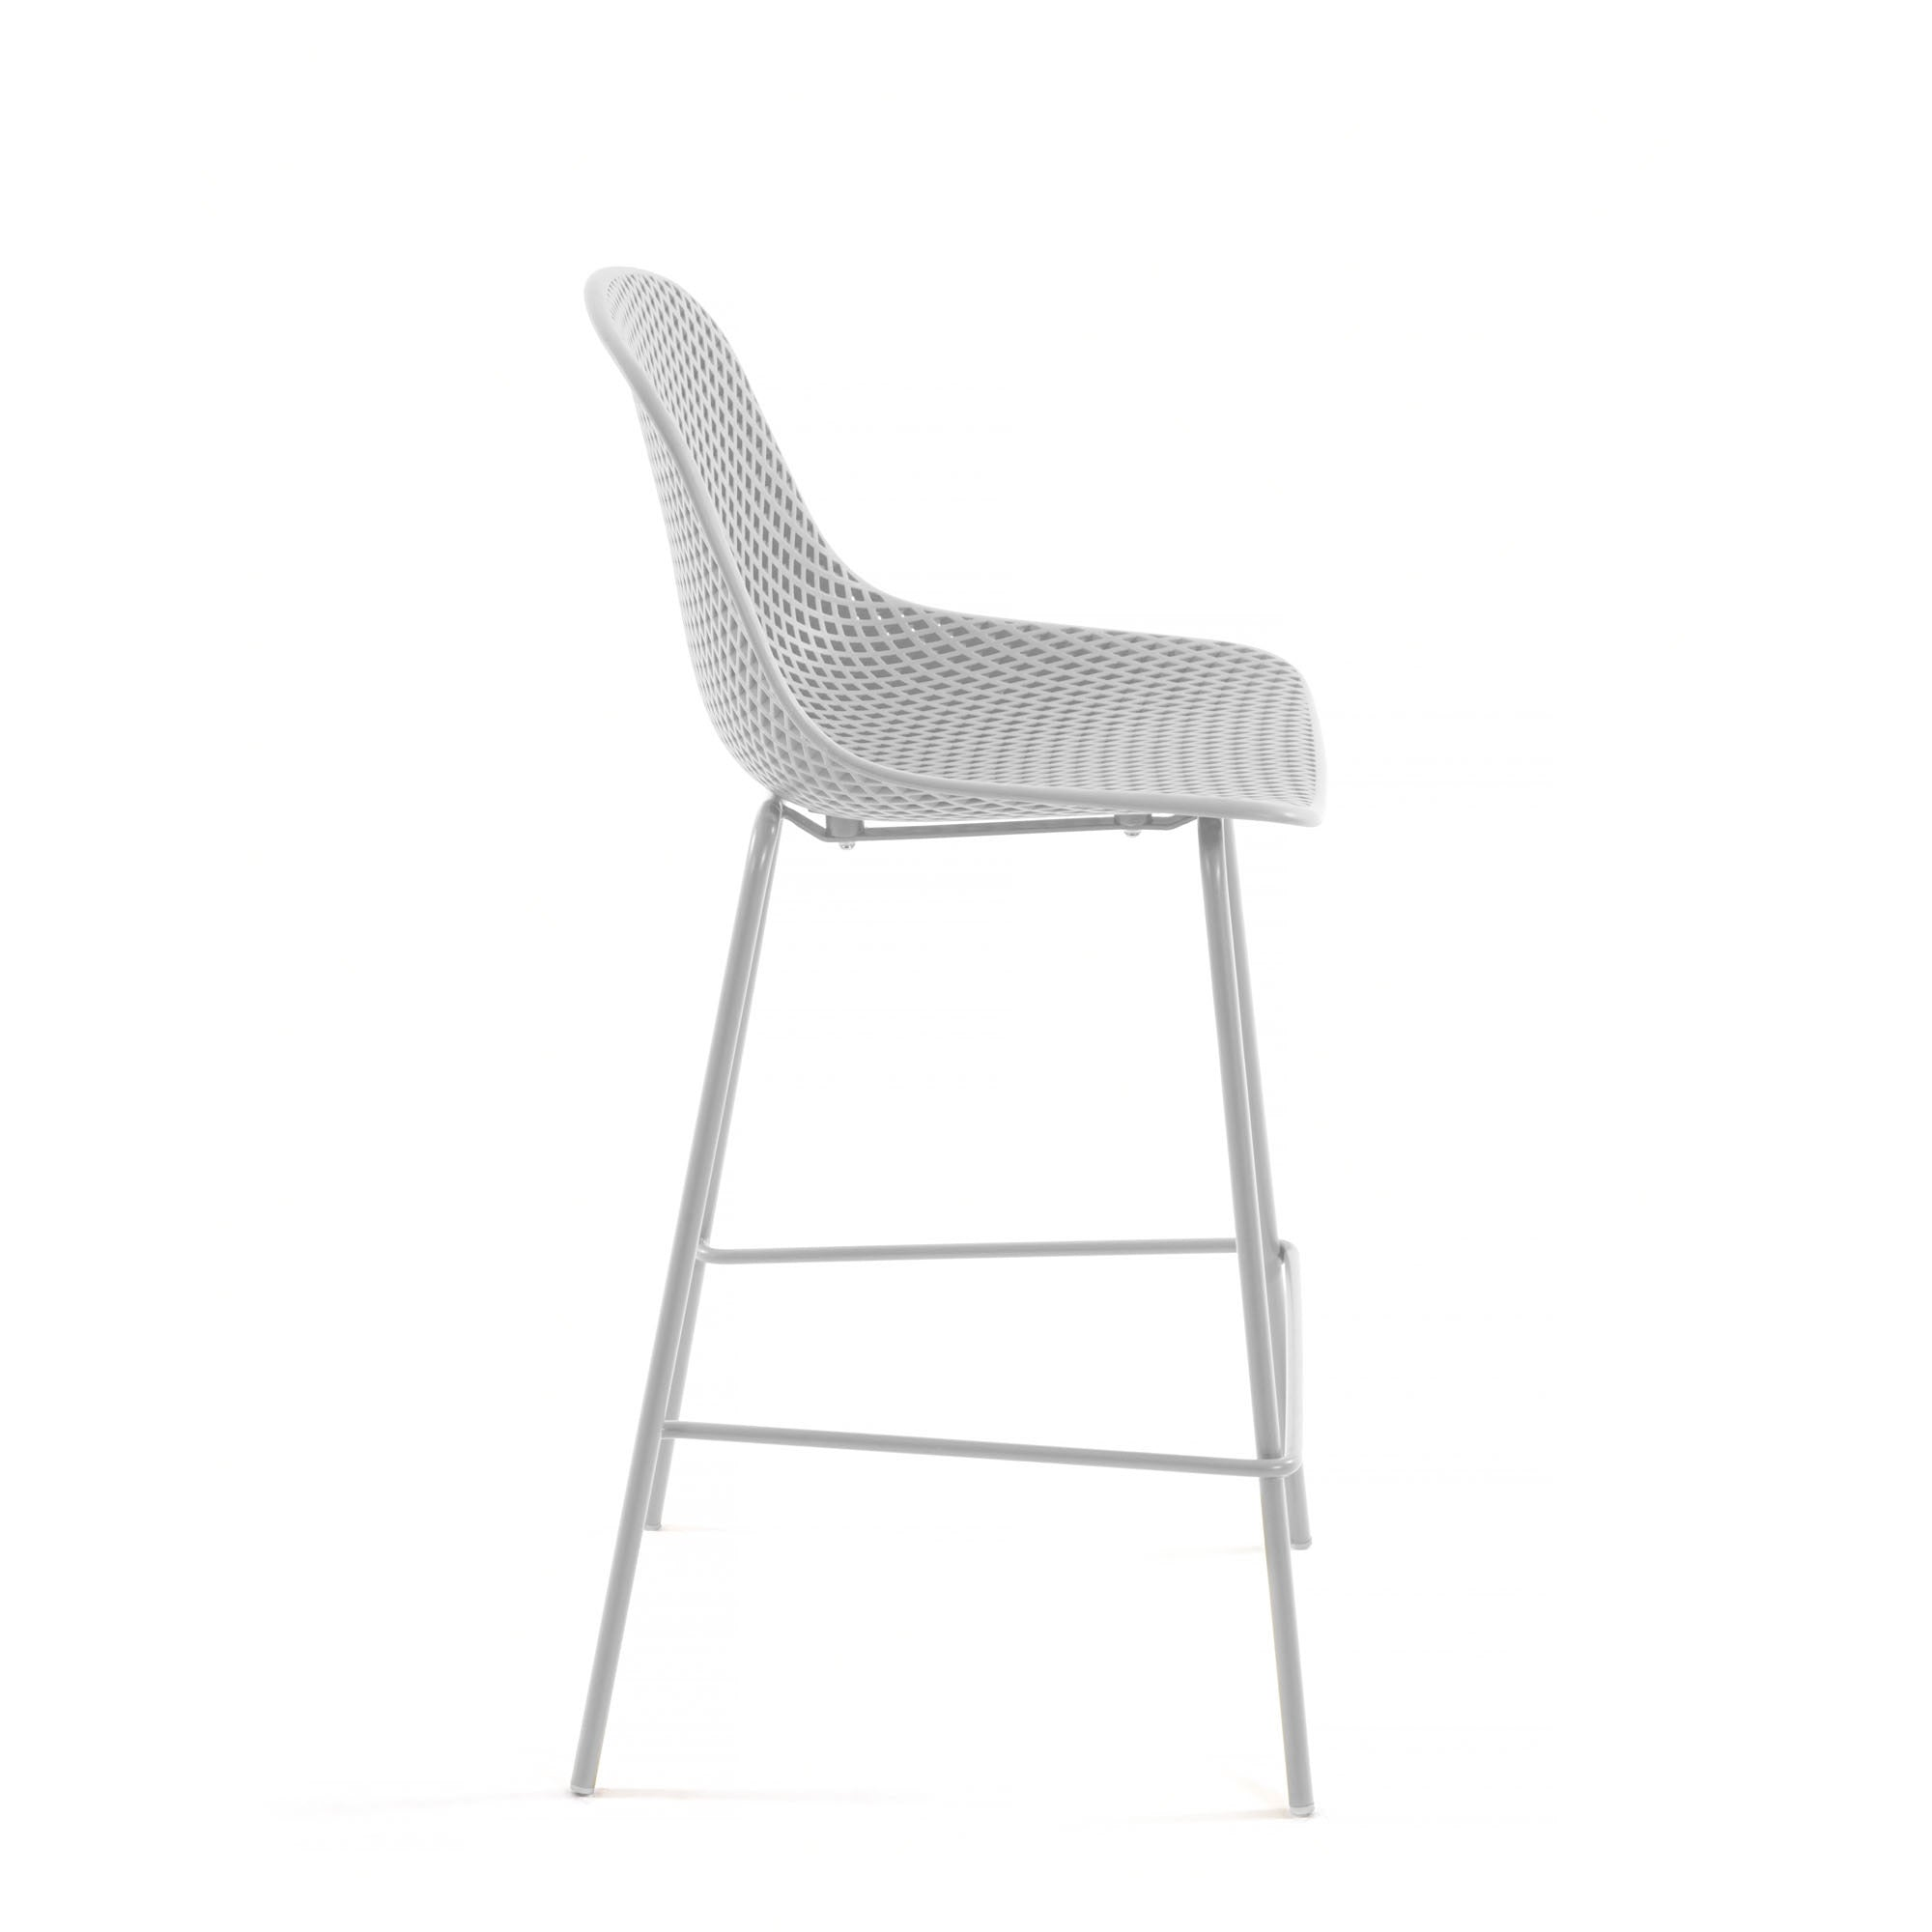 Luino Outdoor Stool White Height 75 cm, Barstool - Home-Buy Interiors